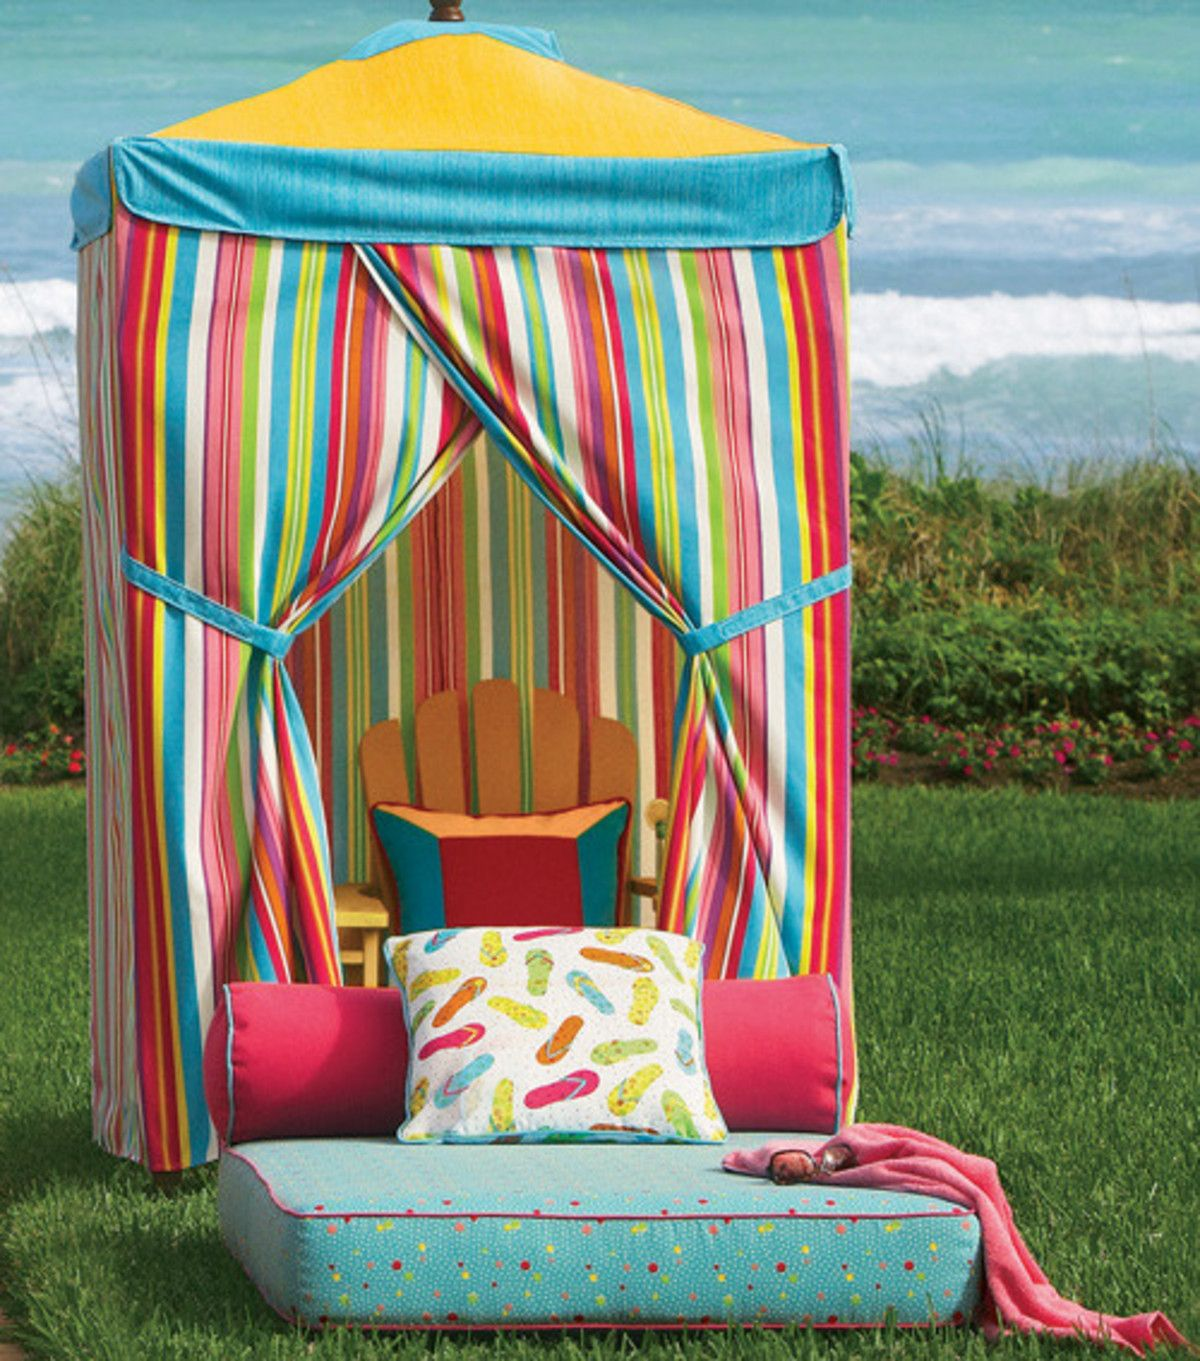 We Would LOVE To Have This In Our Backyard! #Cabana #DIY